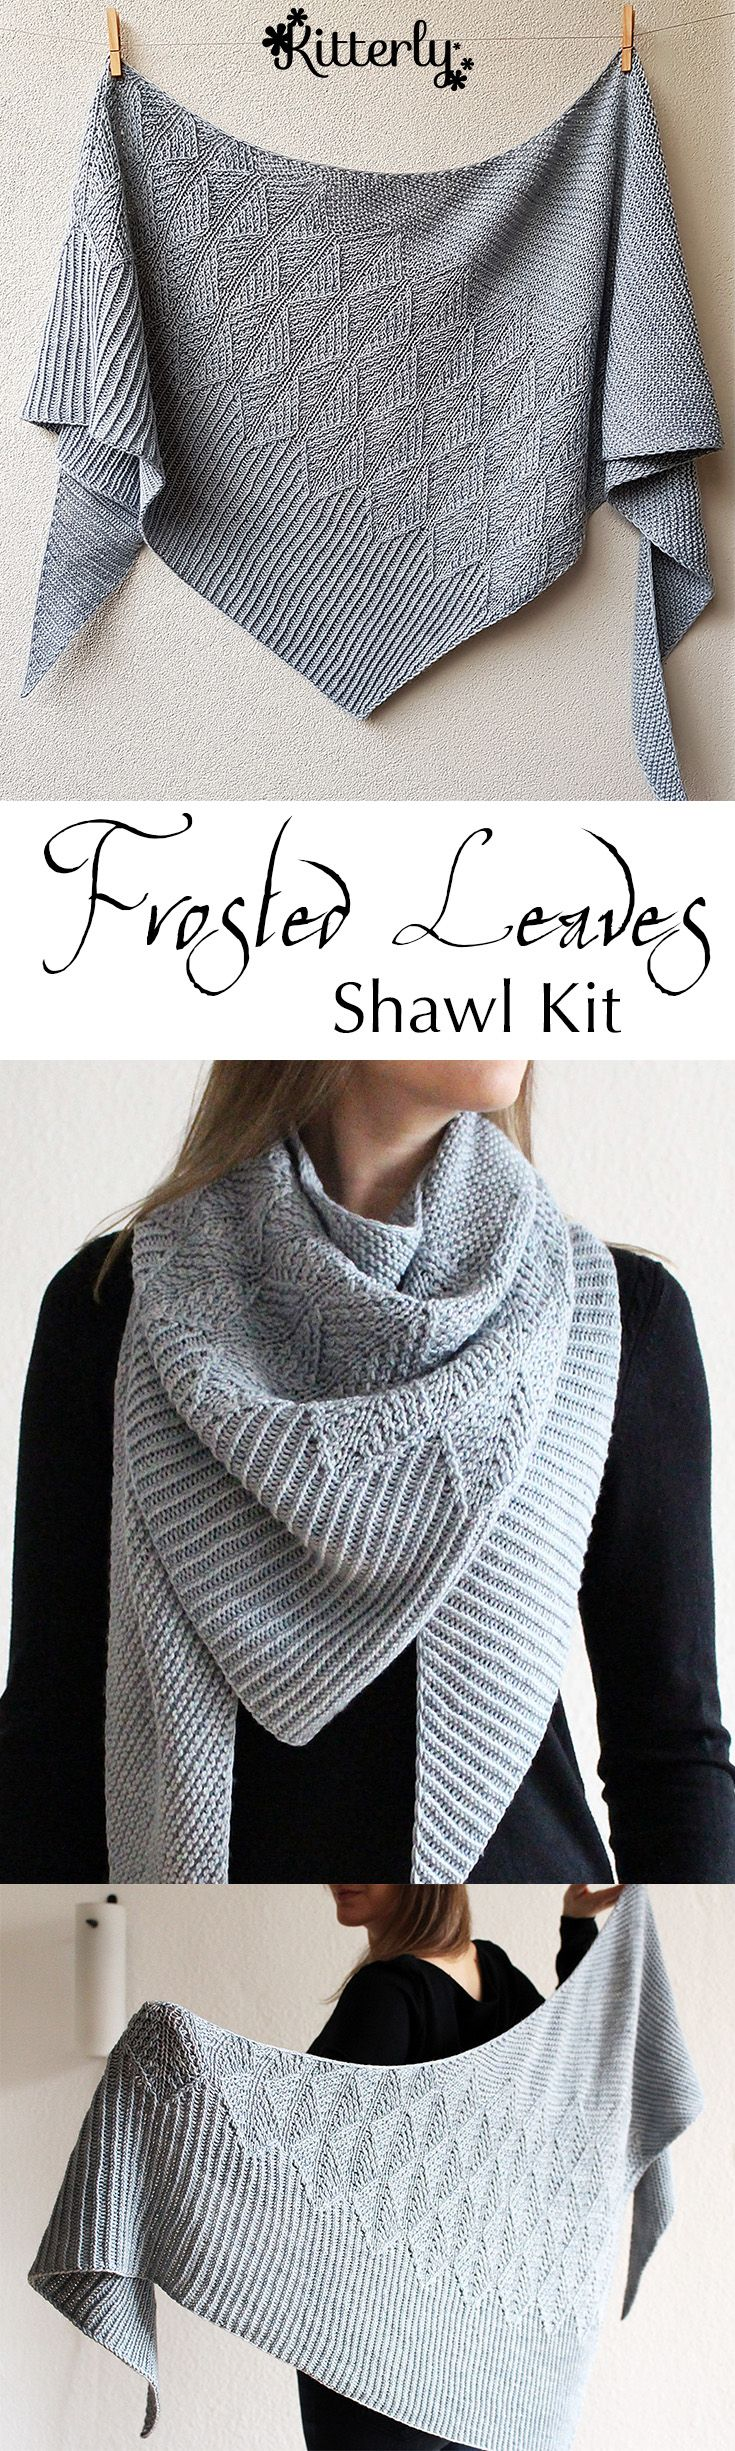 Frosted Leaves shawl knitting kit designed by Lisa Hannes. #kitterlykits